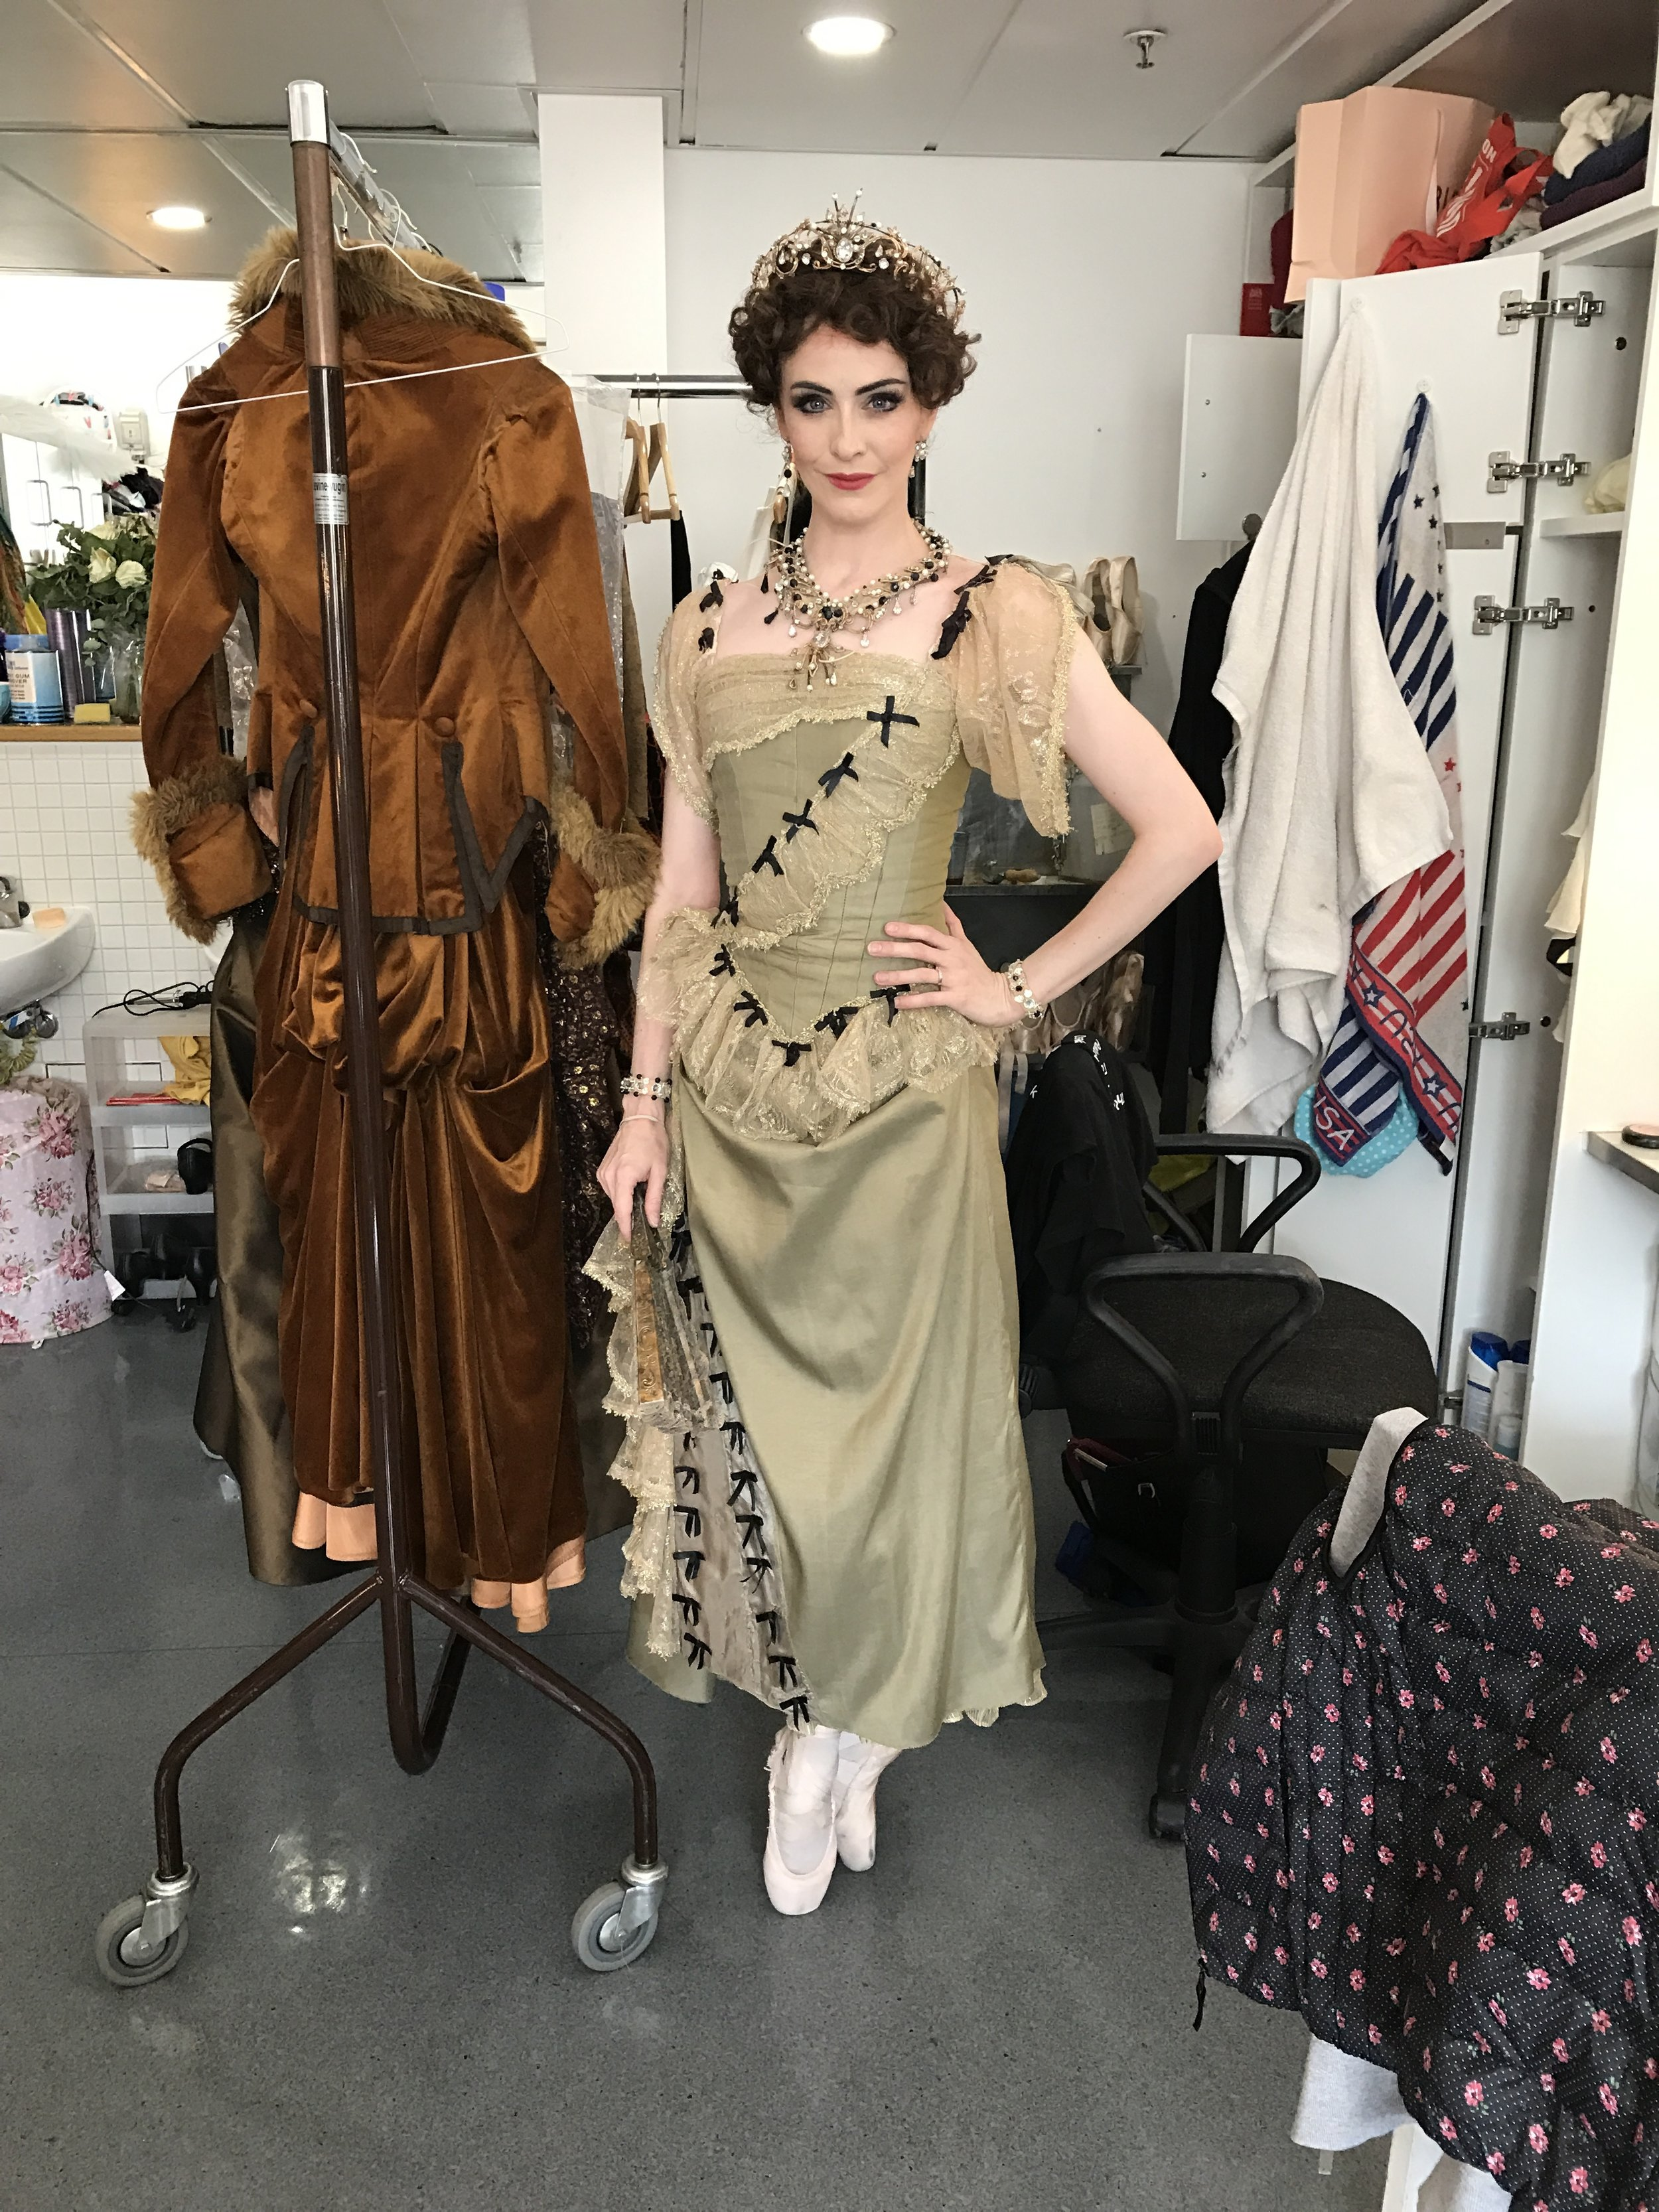 ACT ONE, A LIGHTER DRESS FOR THIS ACT. HAVE TO TAKE OFF LONG ELBOW GLOVES FOR THE PAS DE DEUX, AS THEY CAN AFFECT GRIPS WHILE PARTNERING. MY NECKLACE IS ALSO SEWN ONTO MY DRESS TO KEEP IT OUT OF MY PARTNERS FACE.